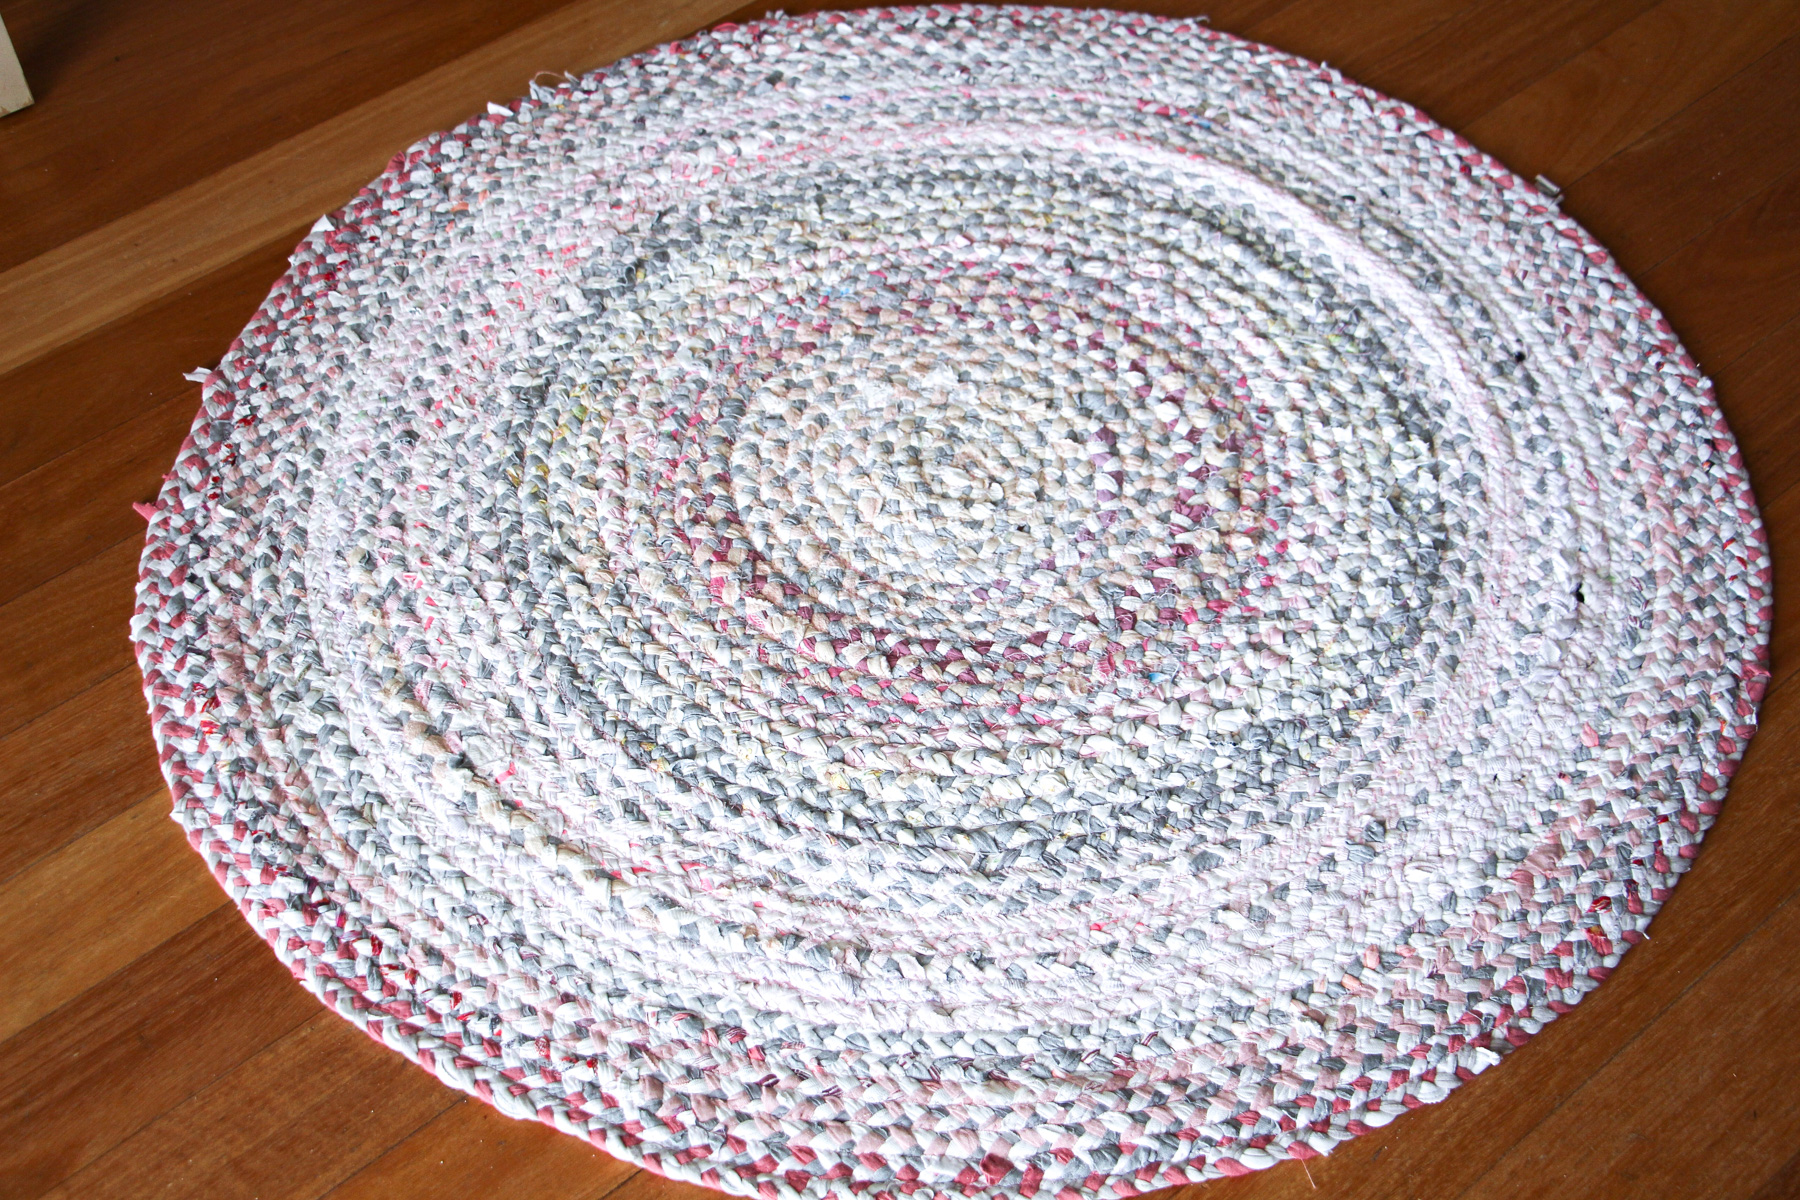 How To Make A Braided Rug From Fabric Scraps And Old